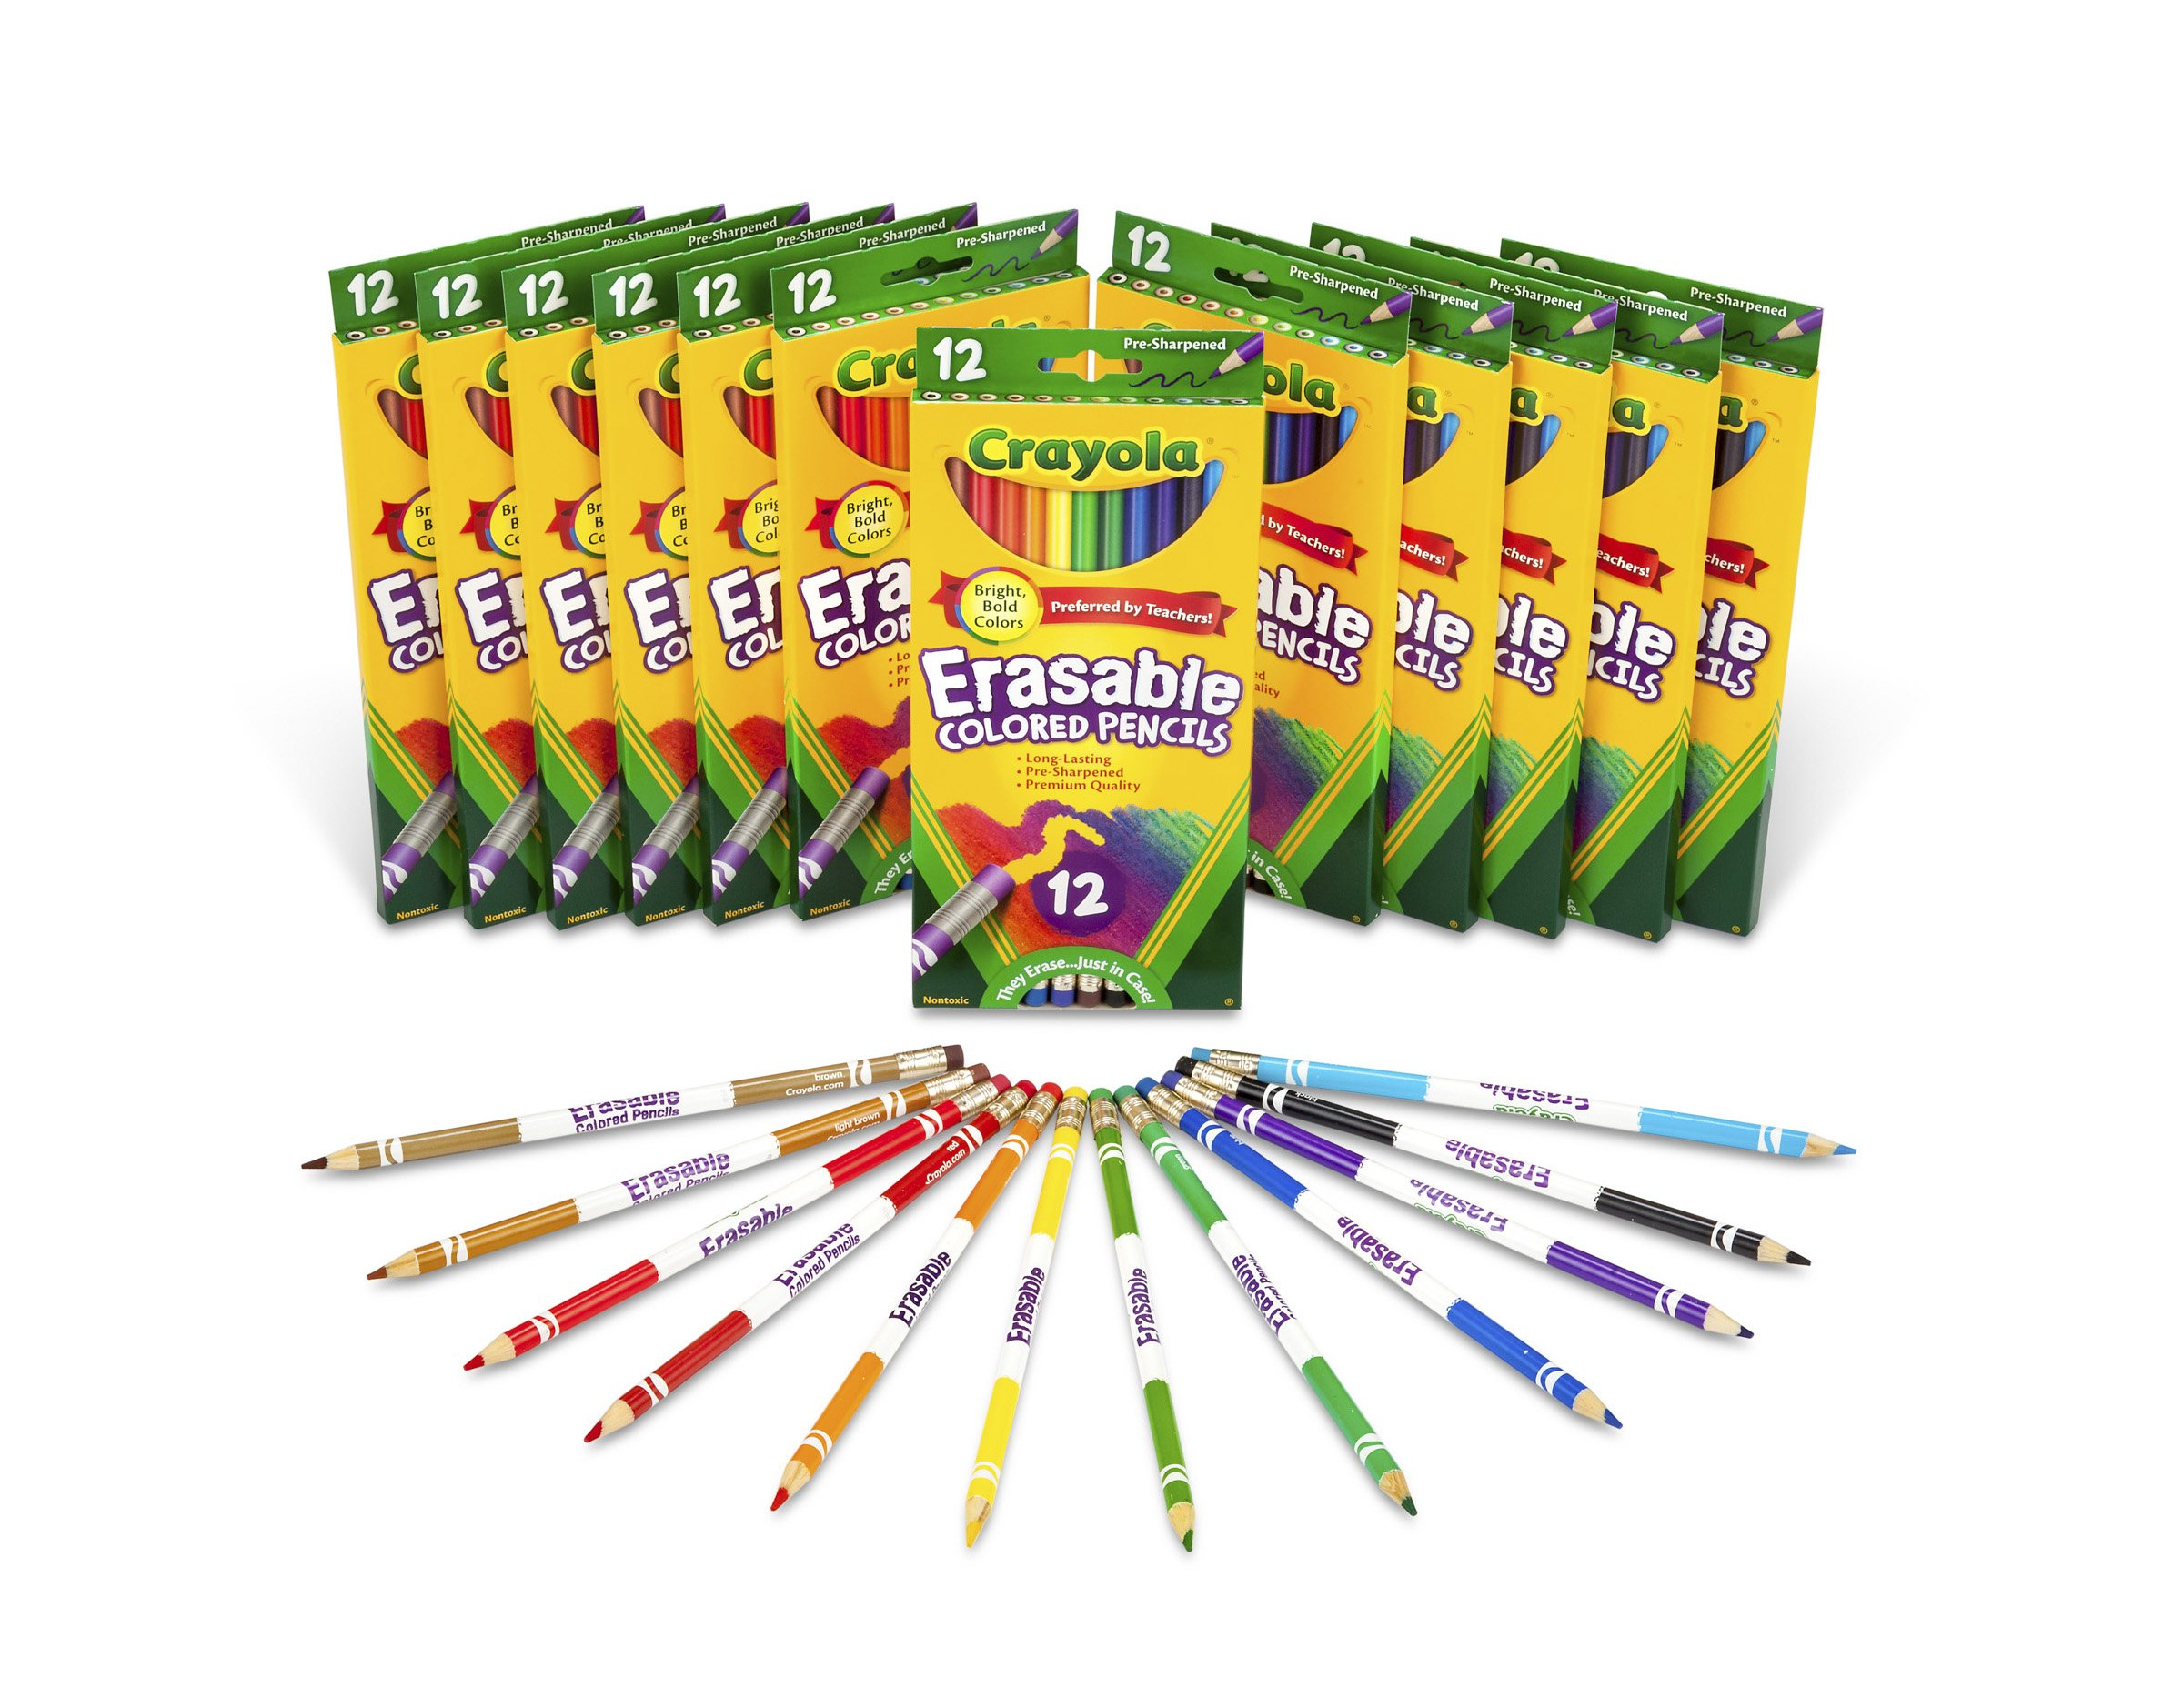 Crayola Bulk Erasable Colored Pencils, Classpack, 12 Packs of 12-Count